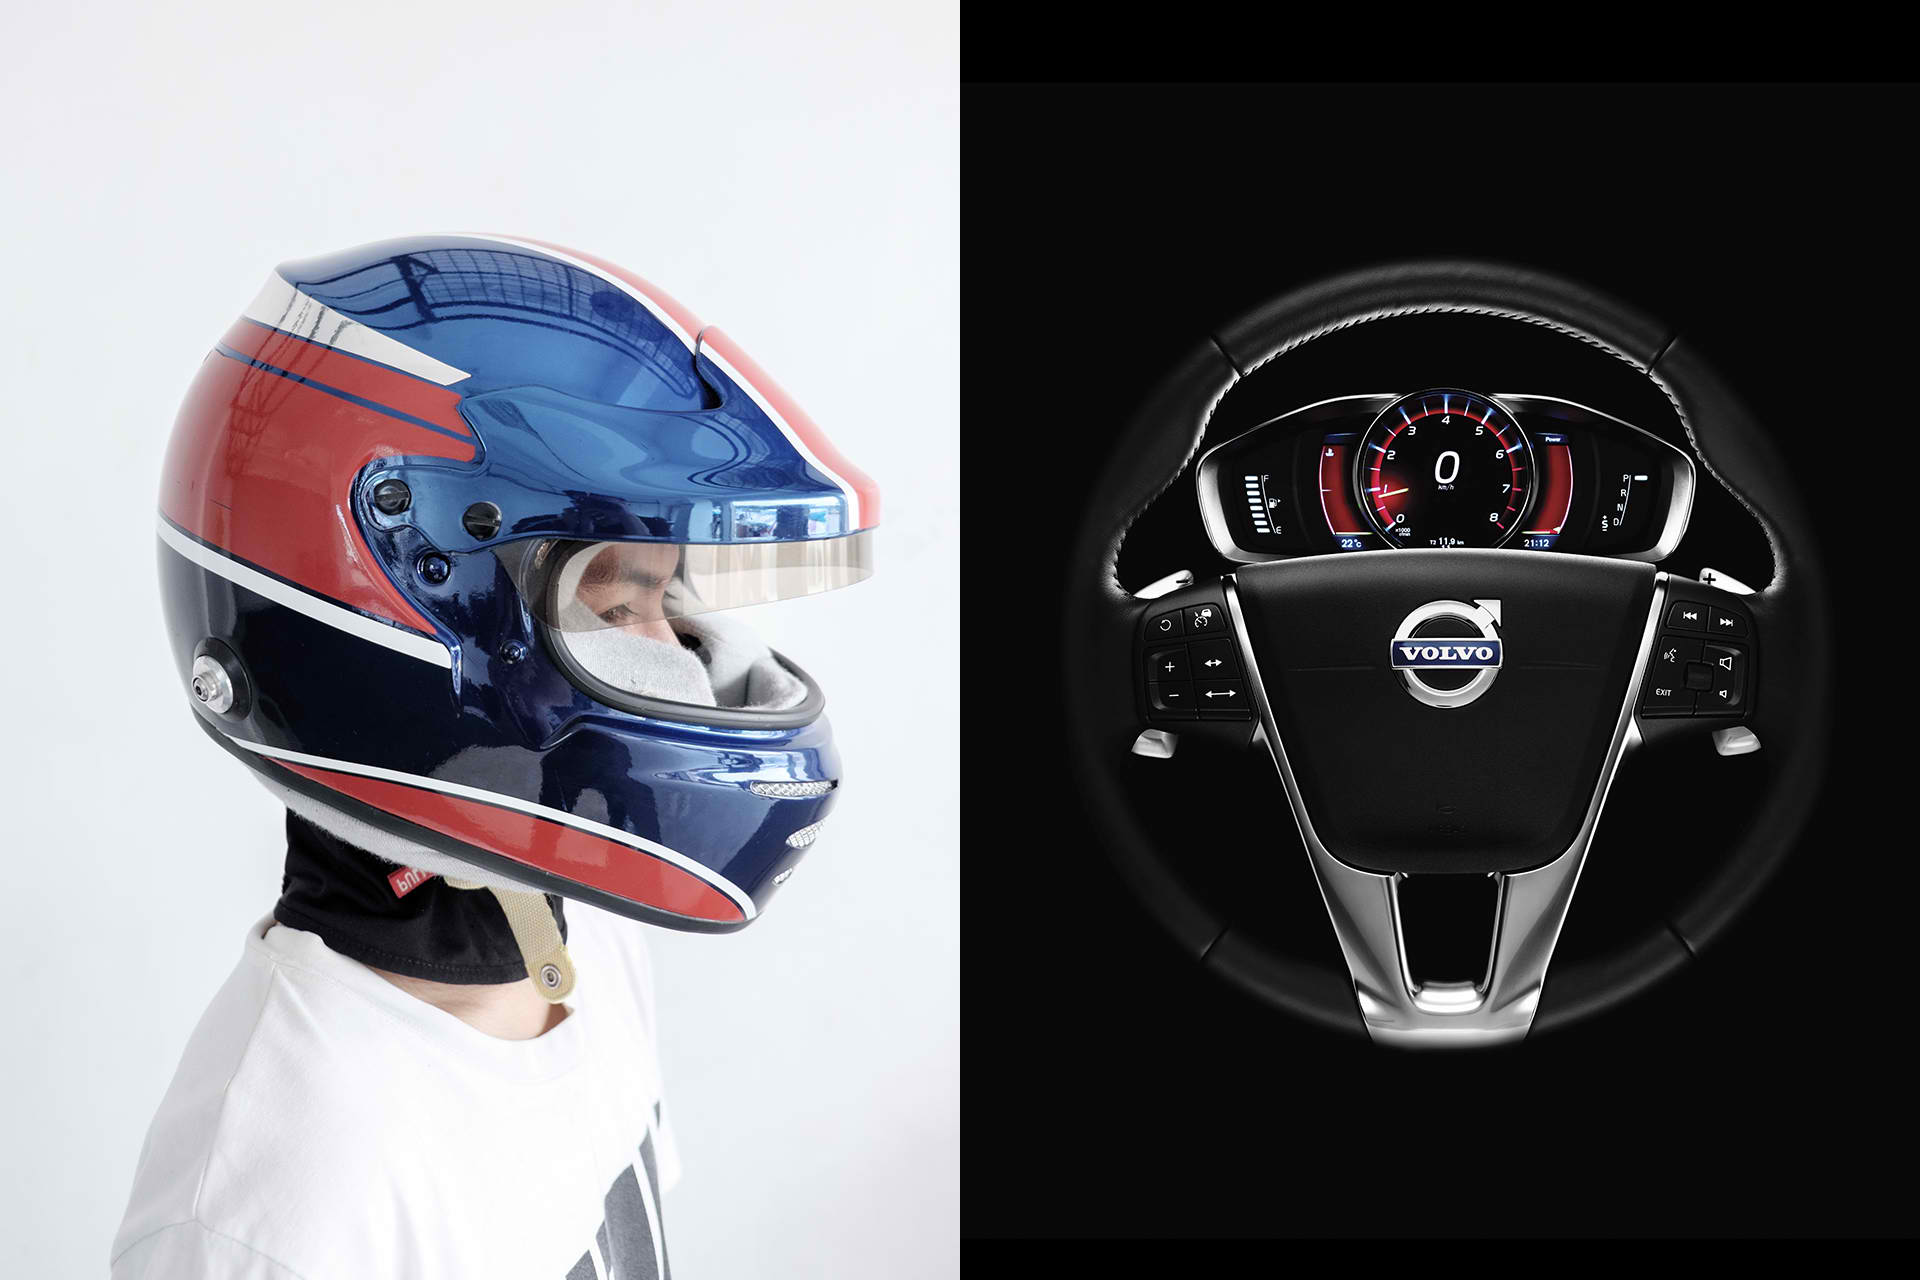 A racing driver wears a blue and red helmet; details of the Volvo XC60 steering wheel